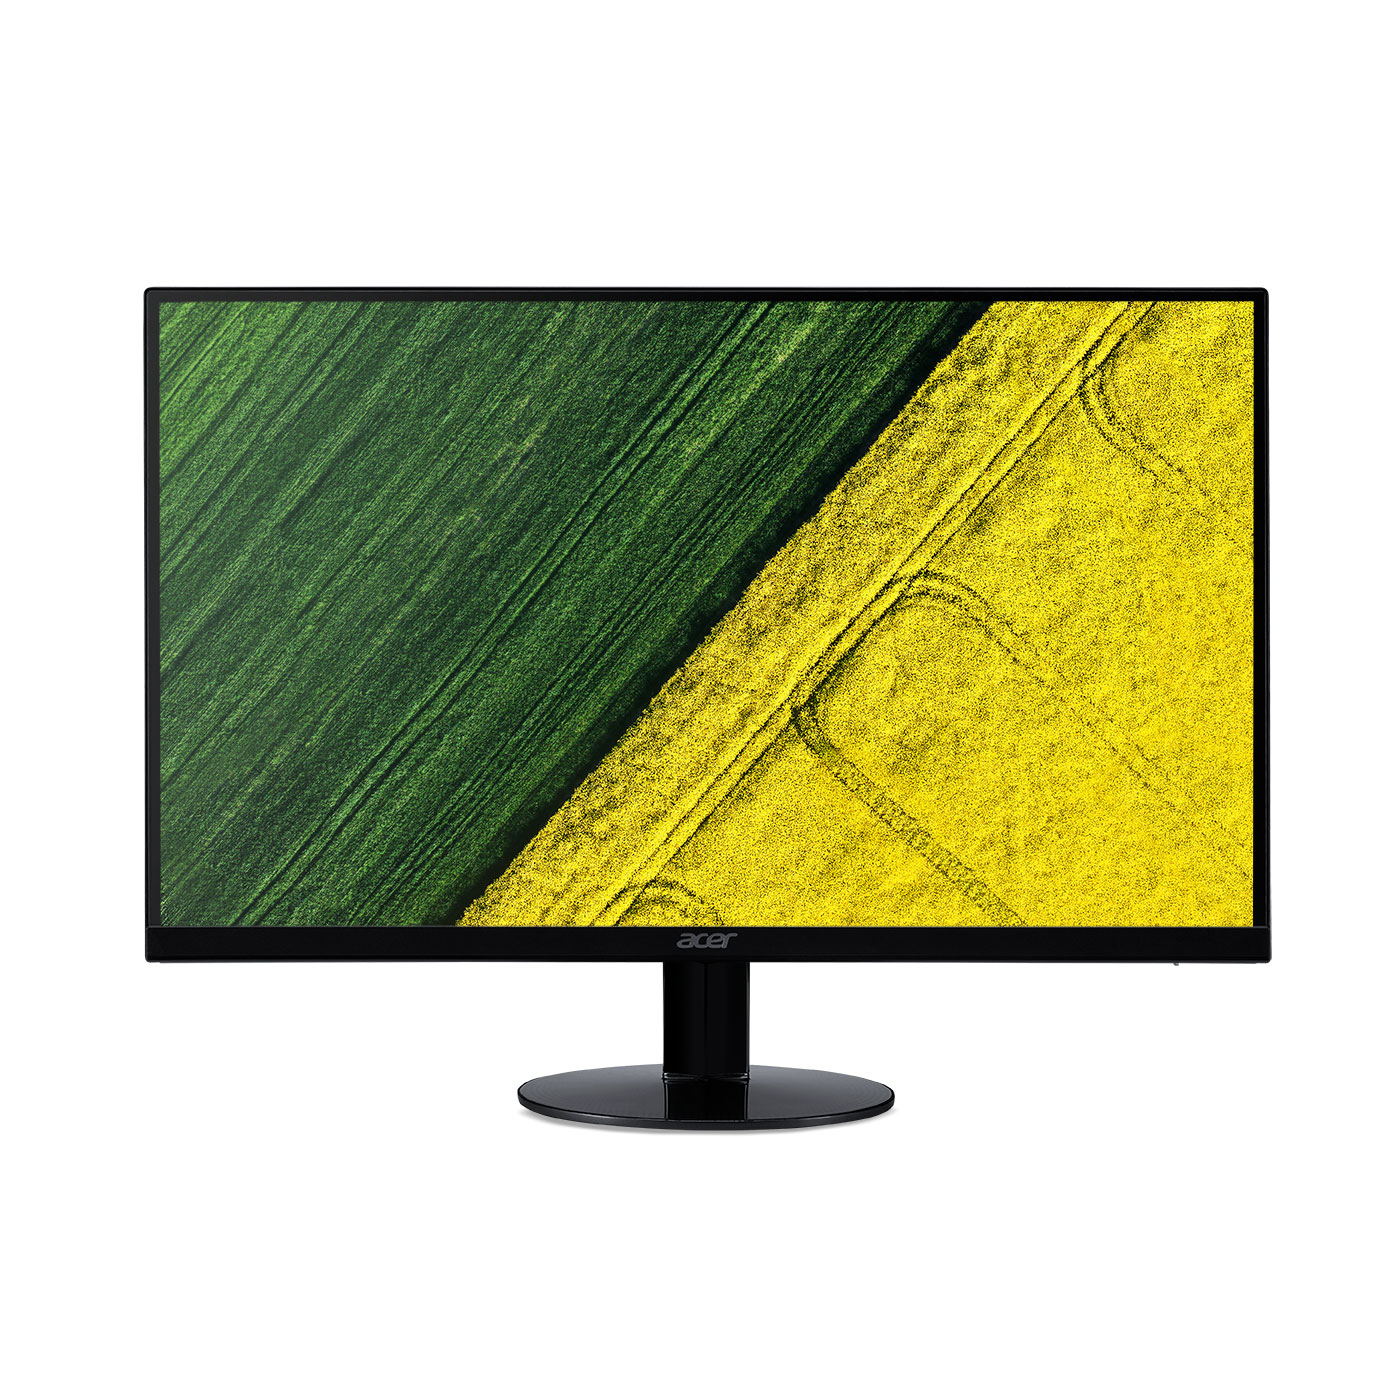 Acer 23 8 led sa240ybid ecran pc acer sur for Ecran dalle ips pour la photo